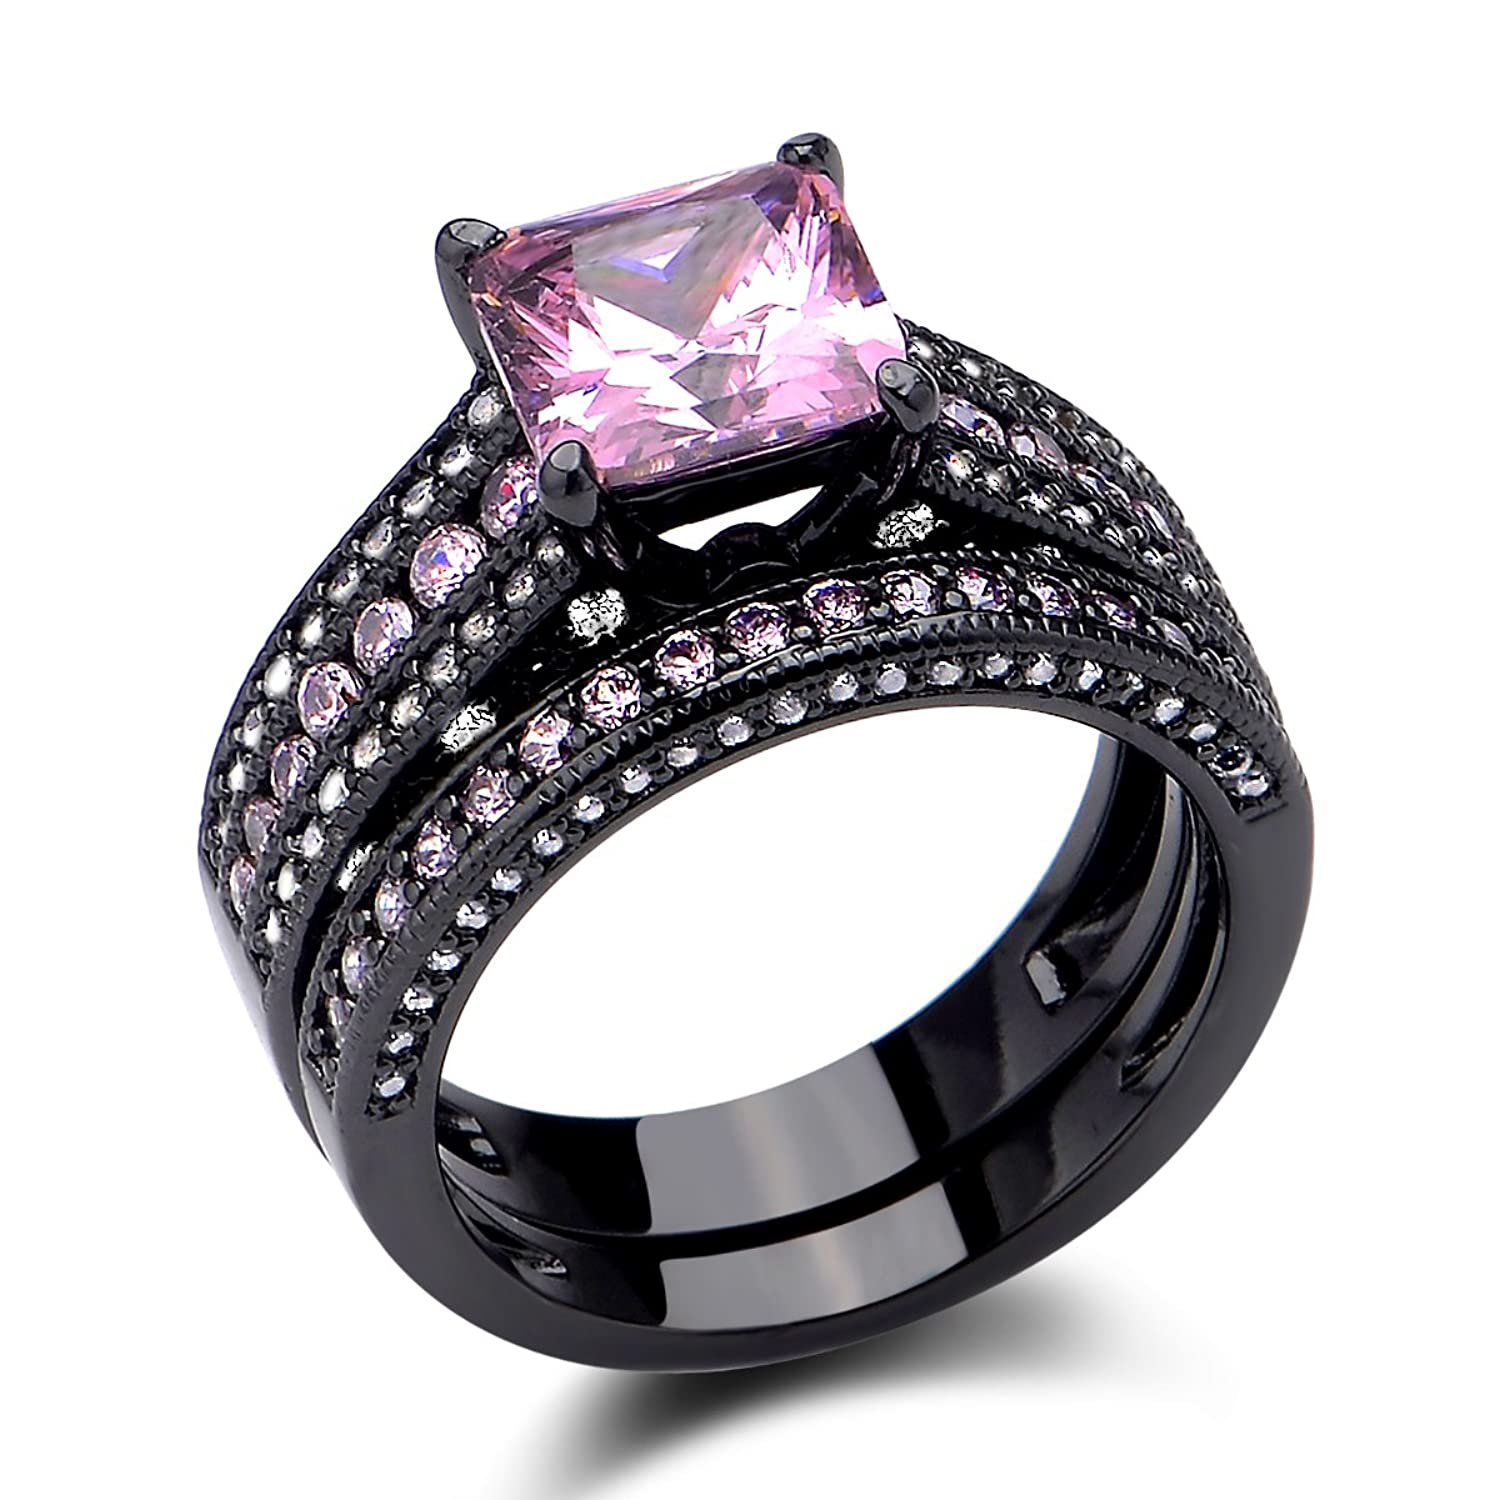 Newshe Black Wedding Ring Set Princess Cz Created Pink Sapphire 925 Sterling Silver Size 5-10